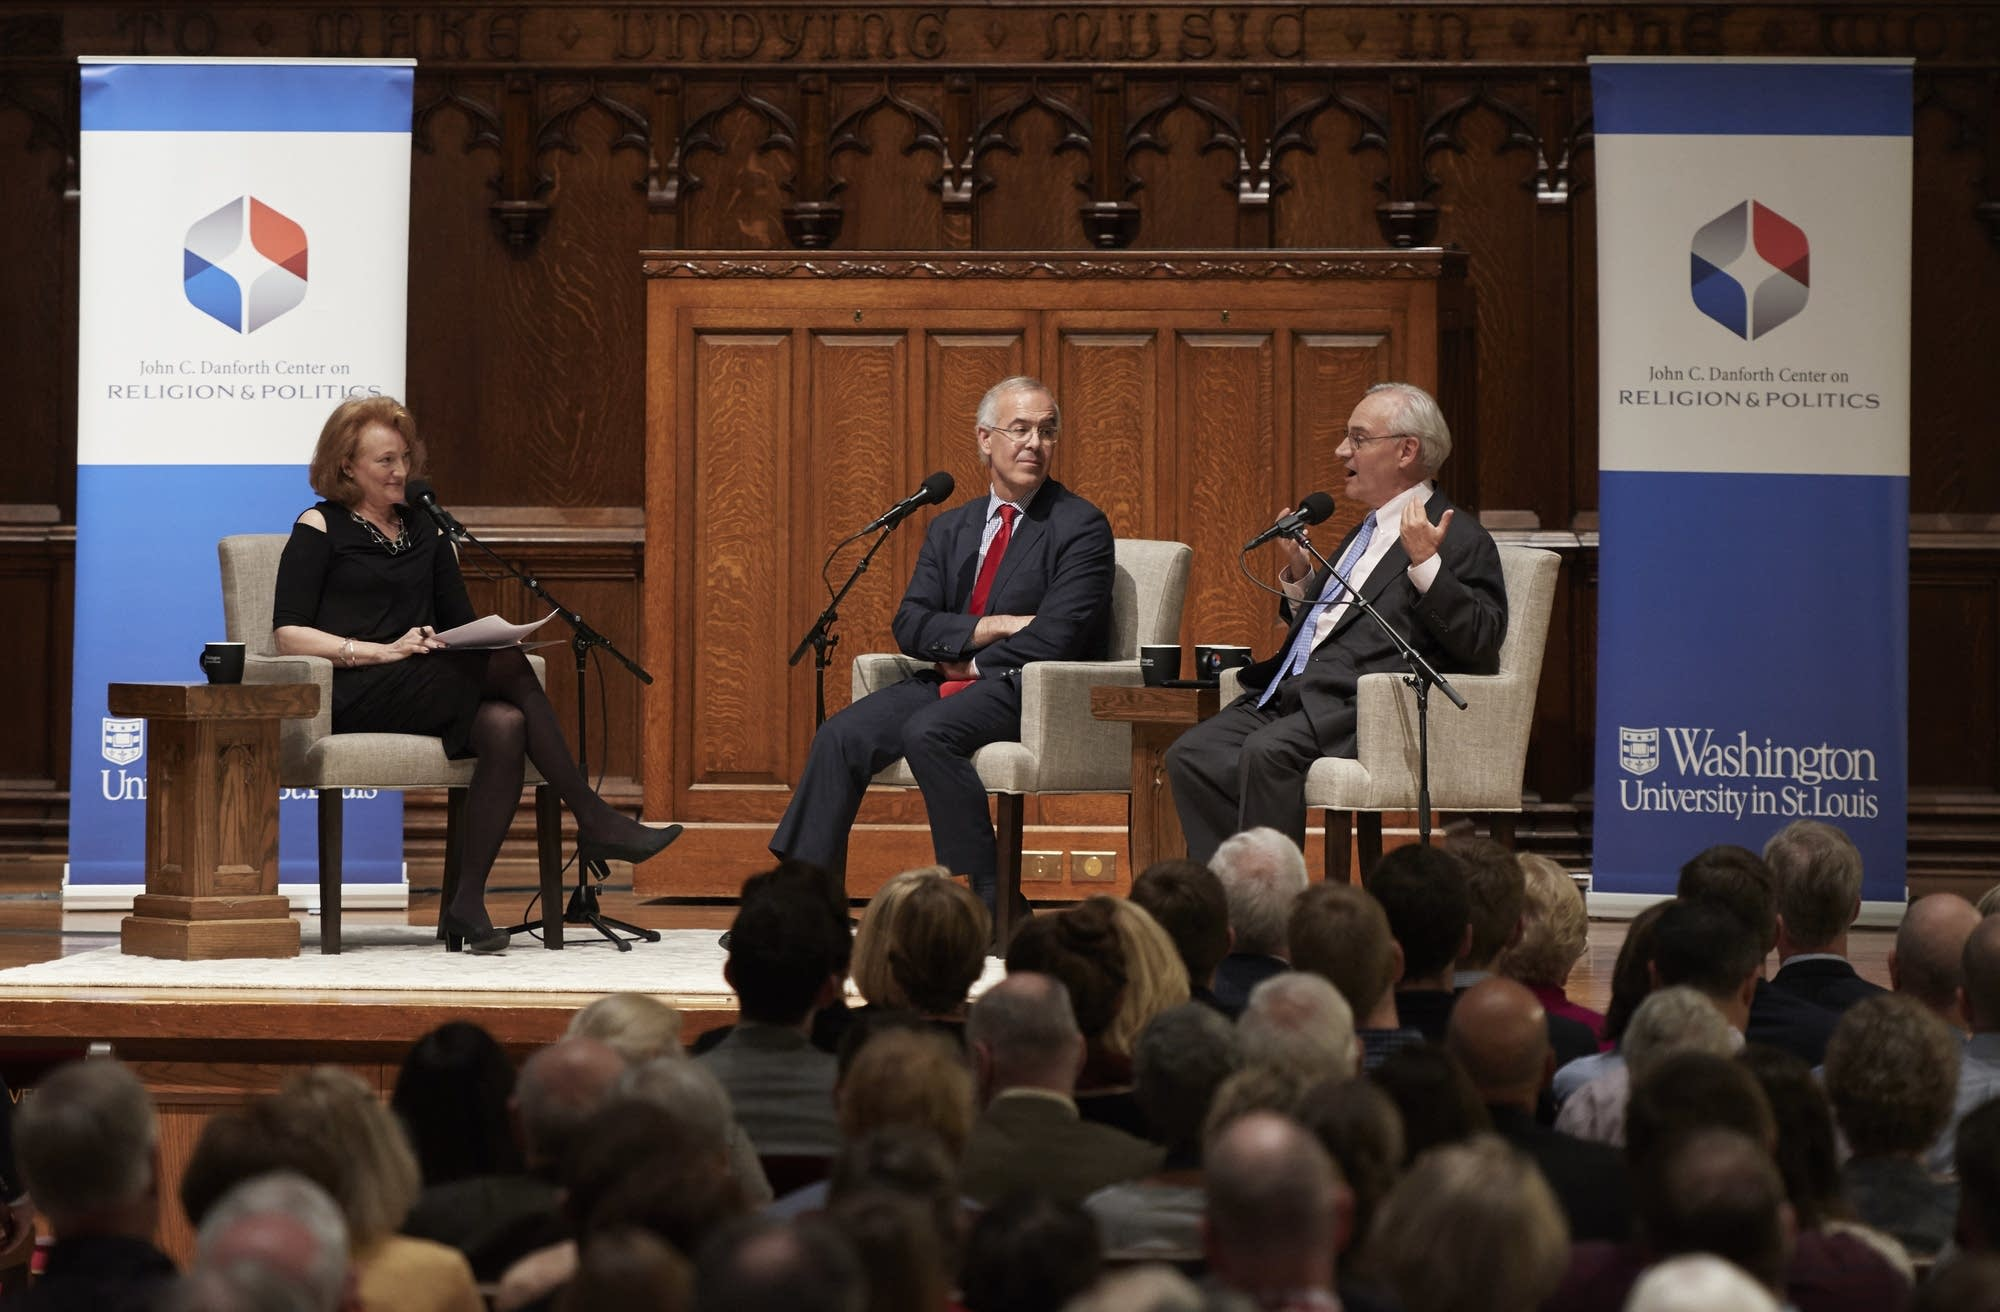 Krista Tippett, E.J. Dionne and David Brooks